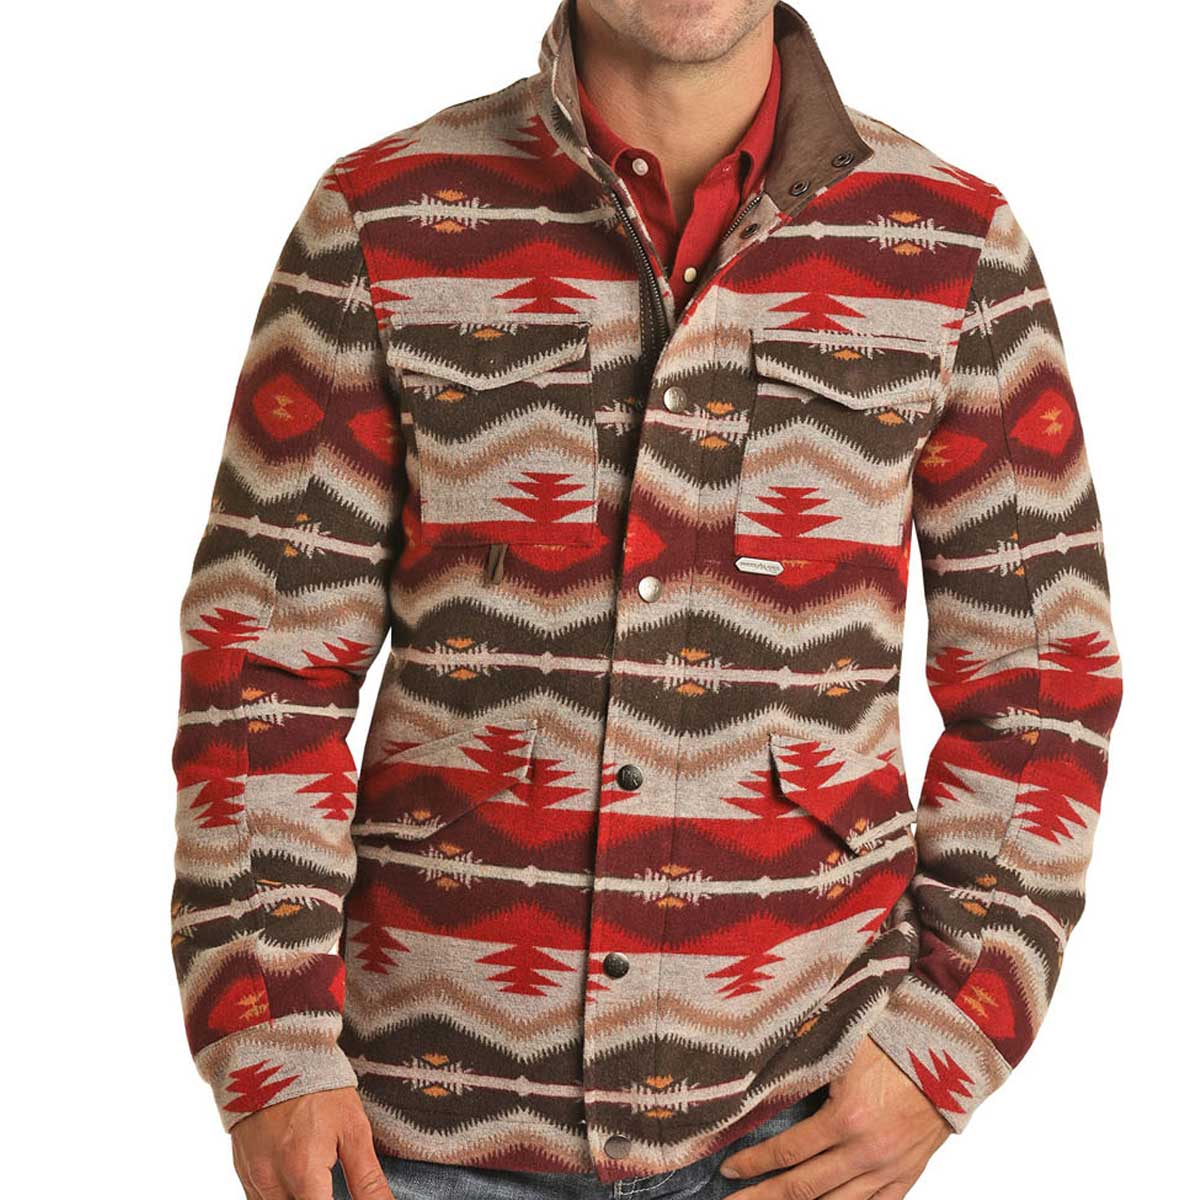 Panhandle Men's Aztec Jacquard Jacket - Red & Tan